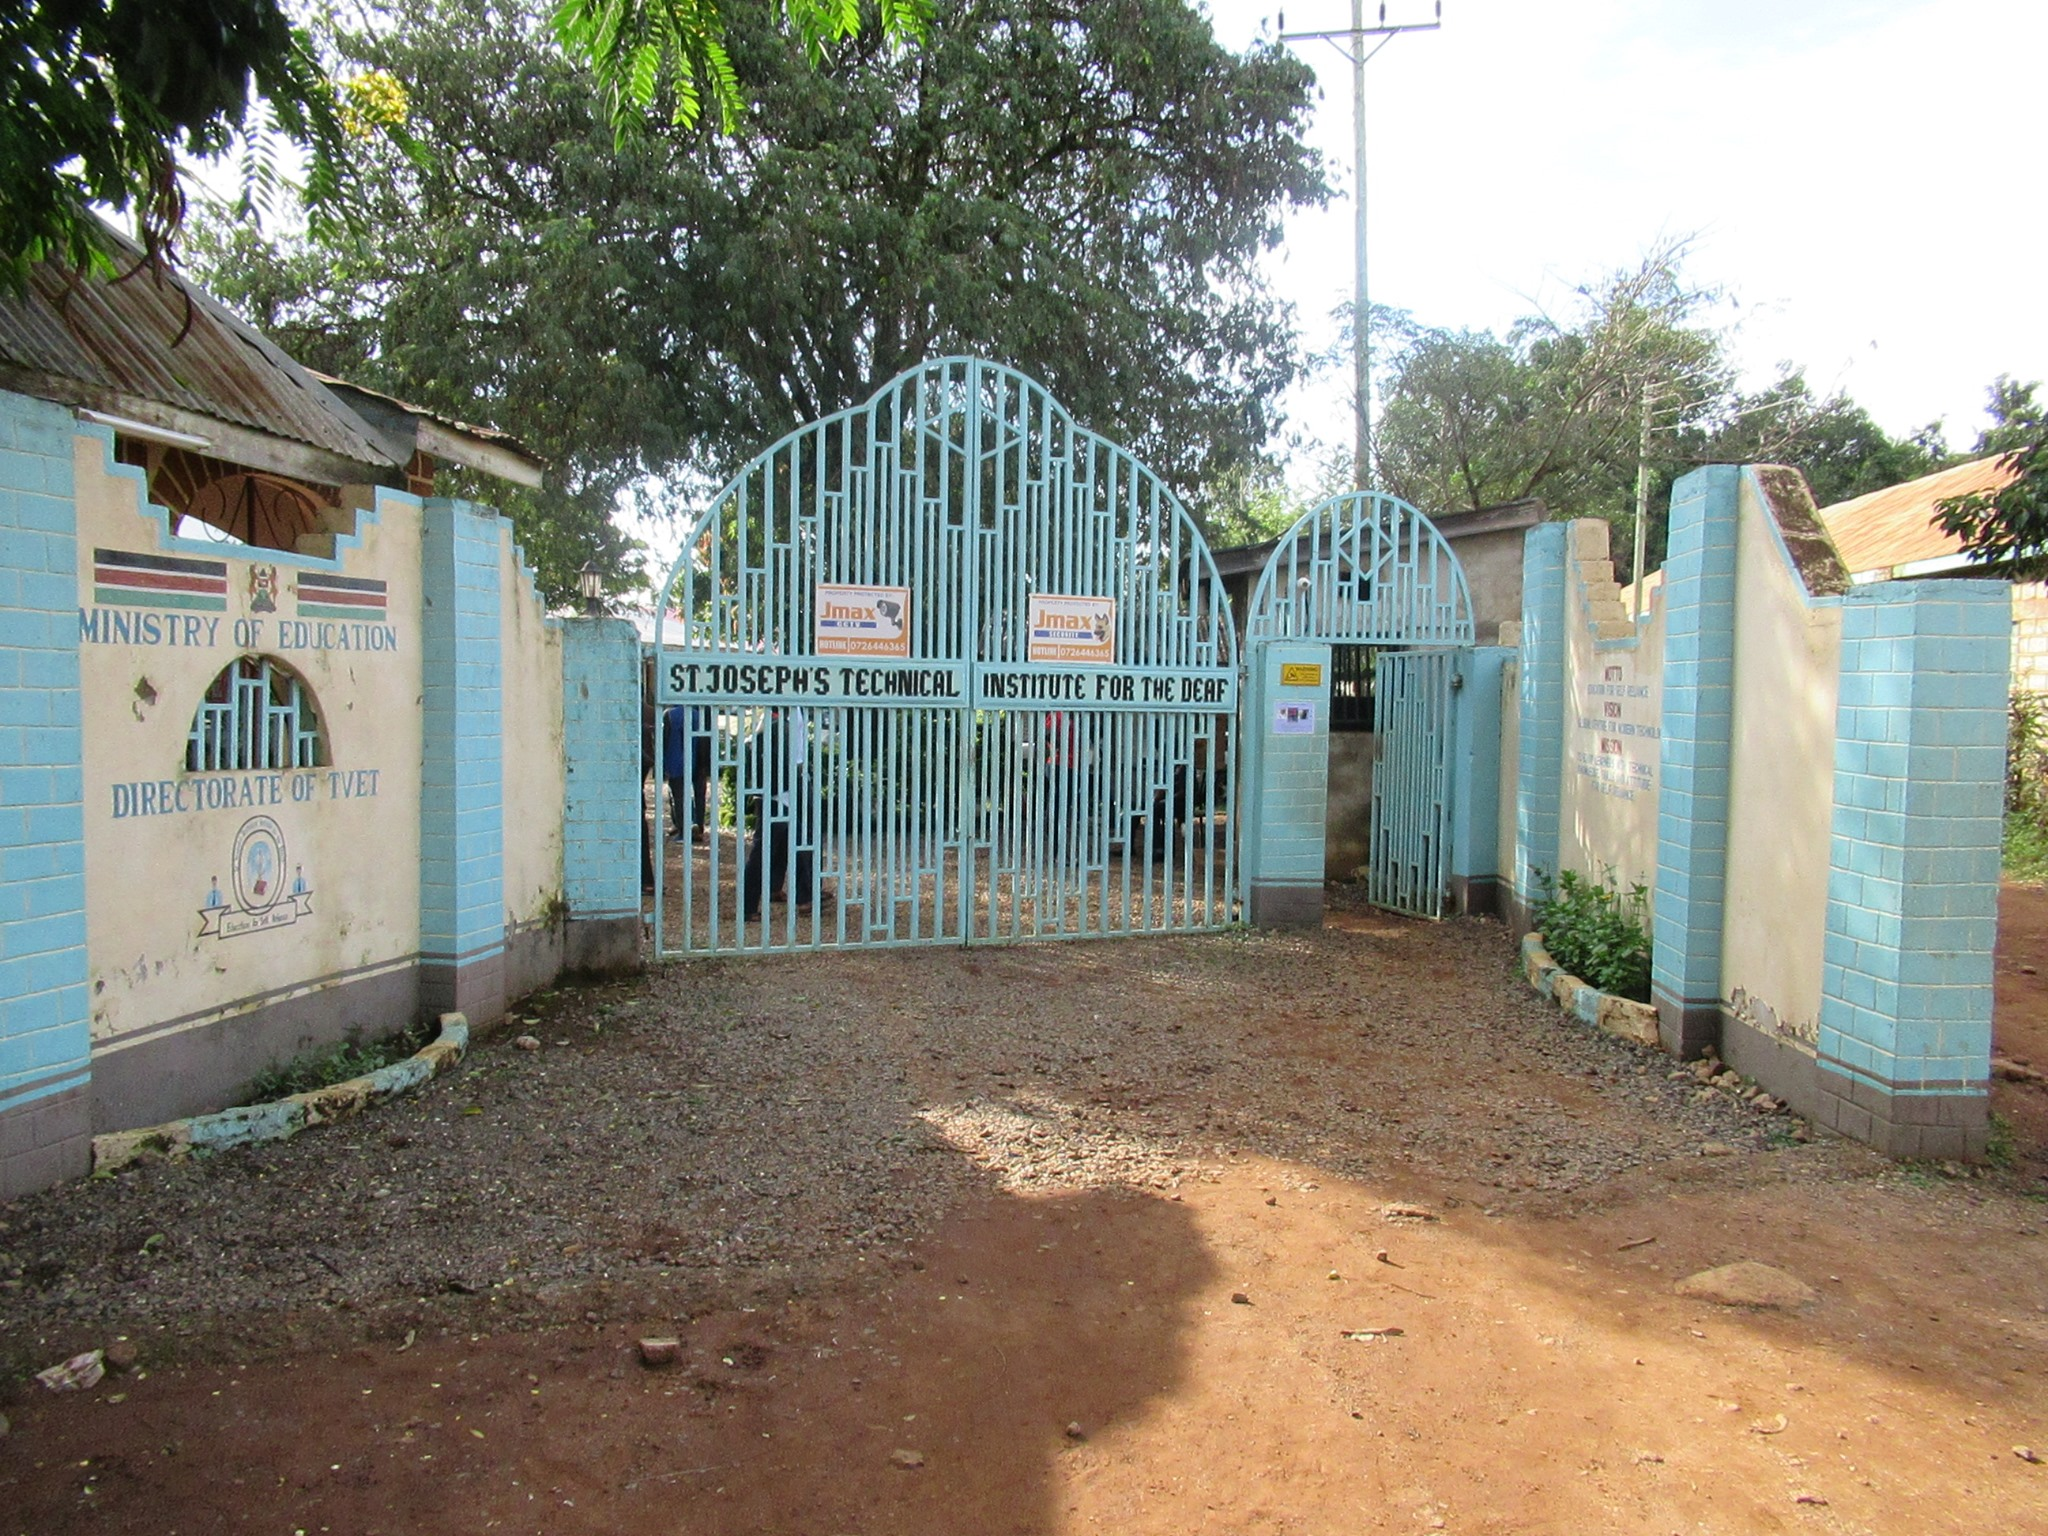 St Joseph's Technical Training Institute for the Deaf Nyang'oma